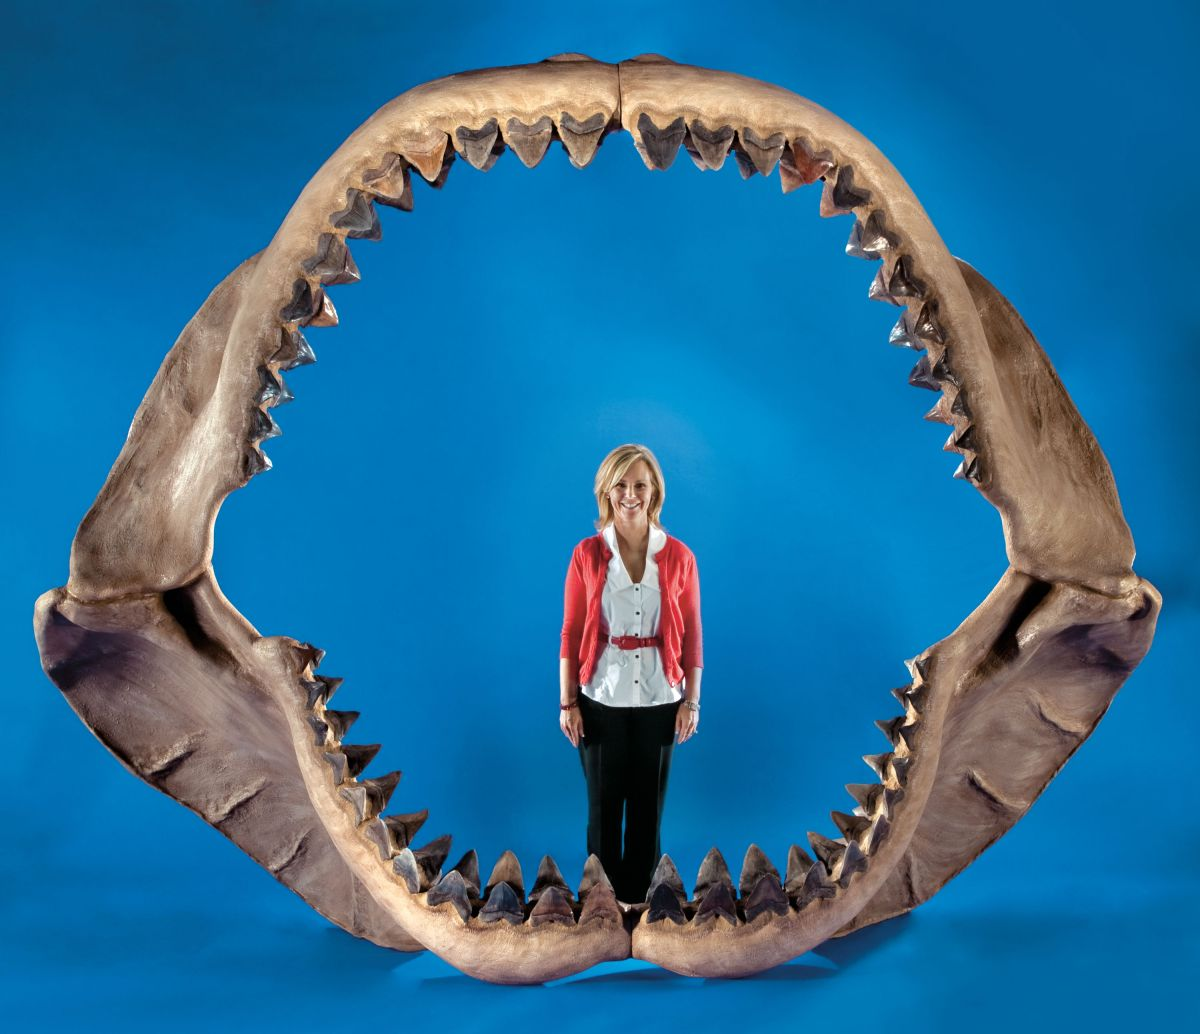 For Sale: World's Largest Shark Jaws | Live Science